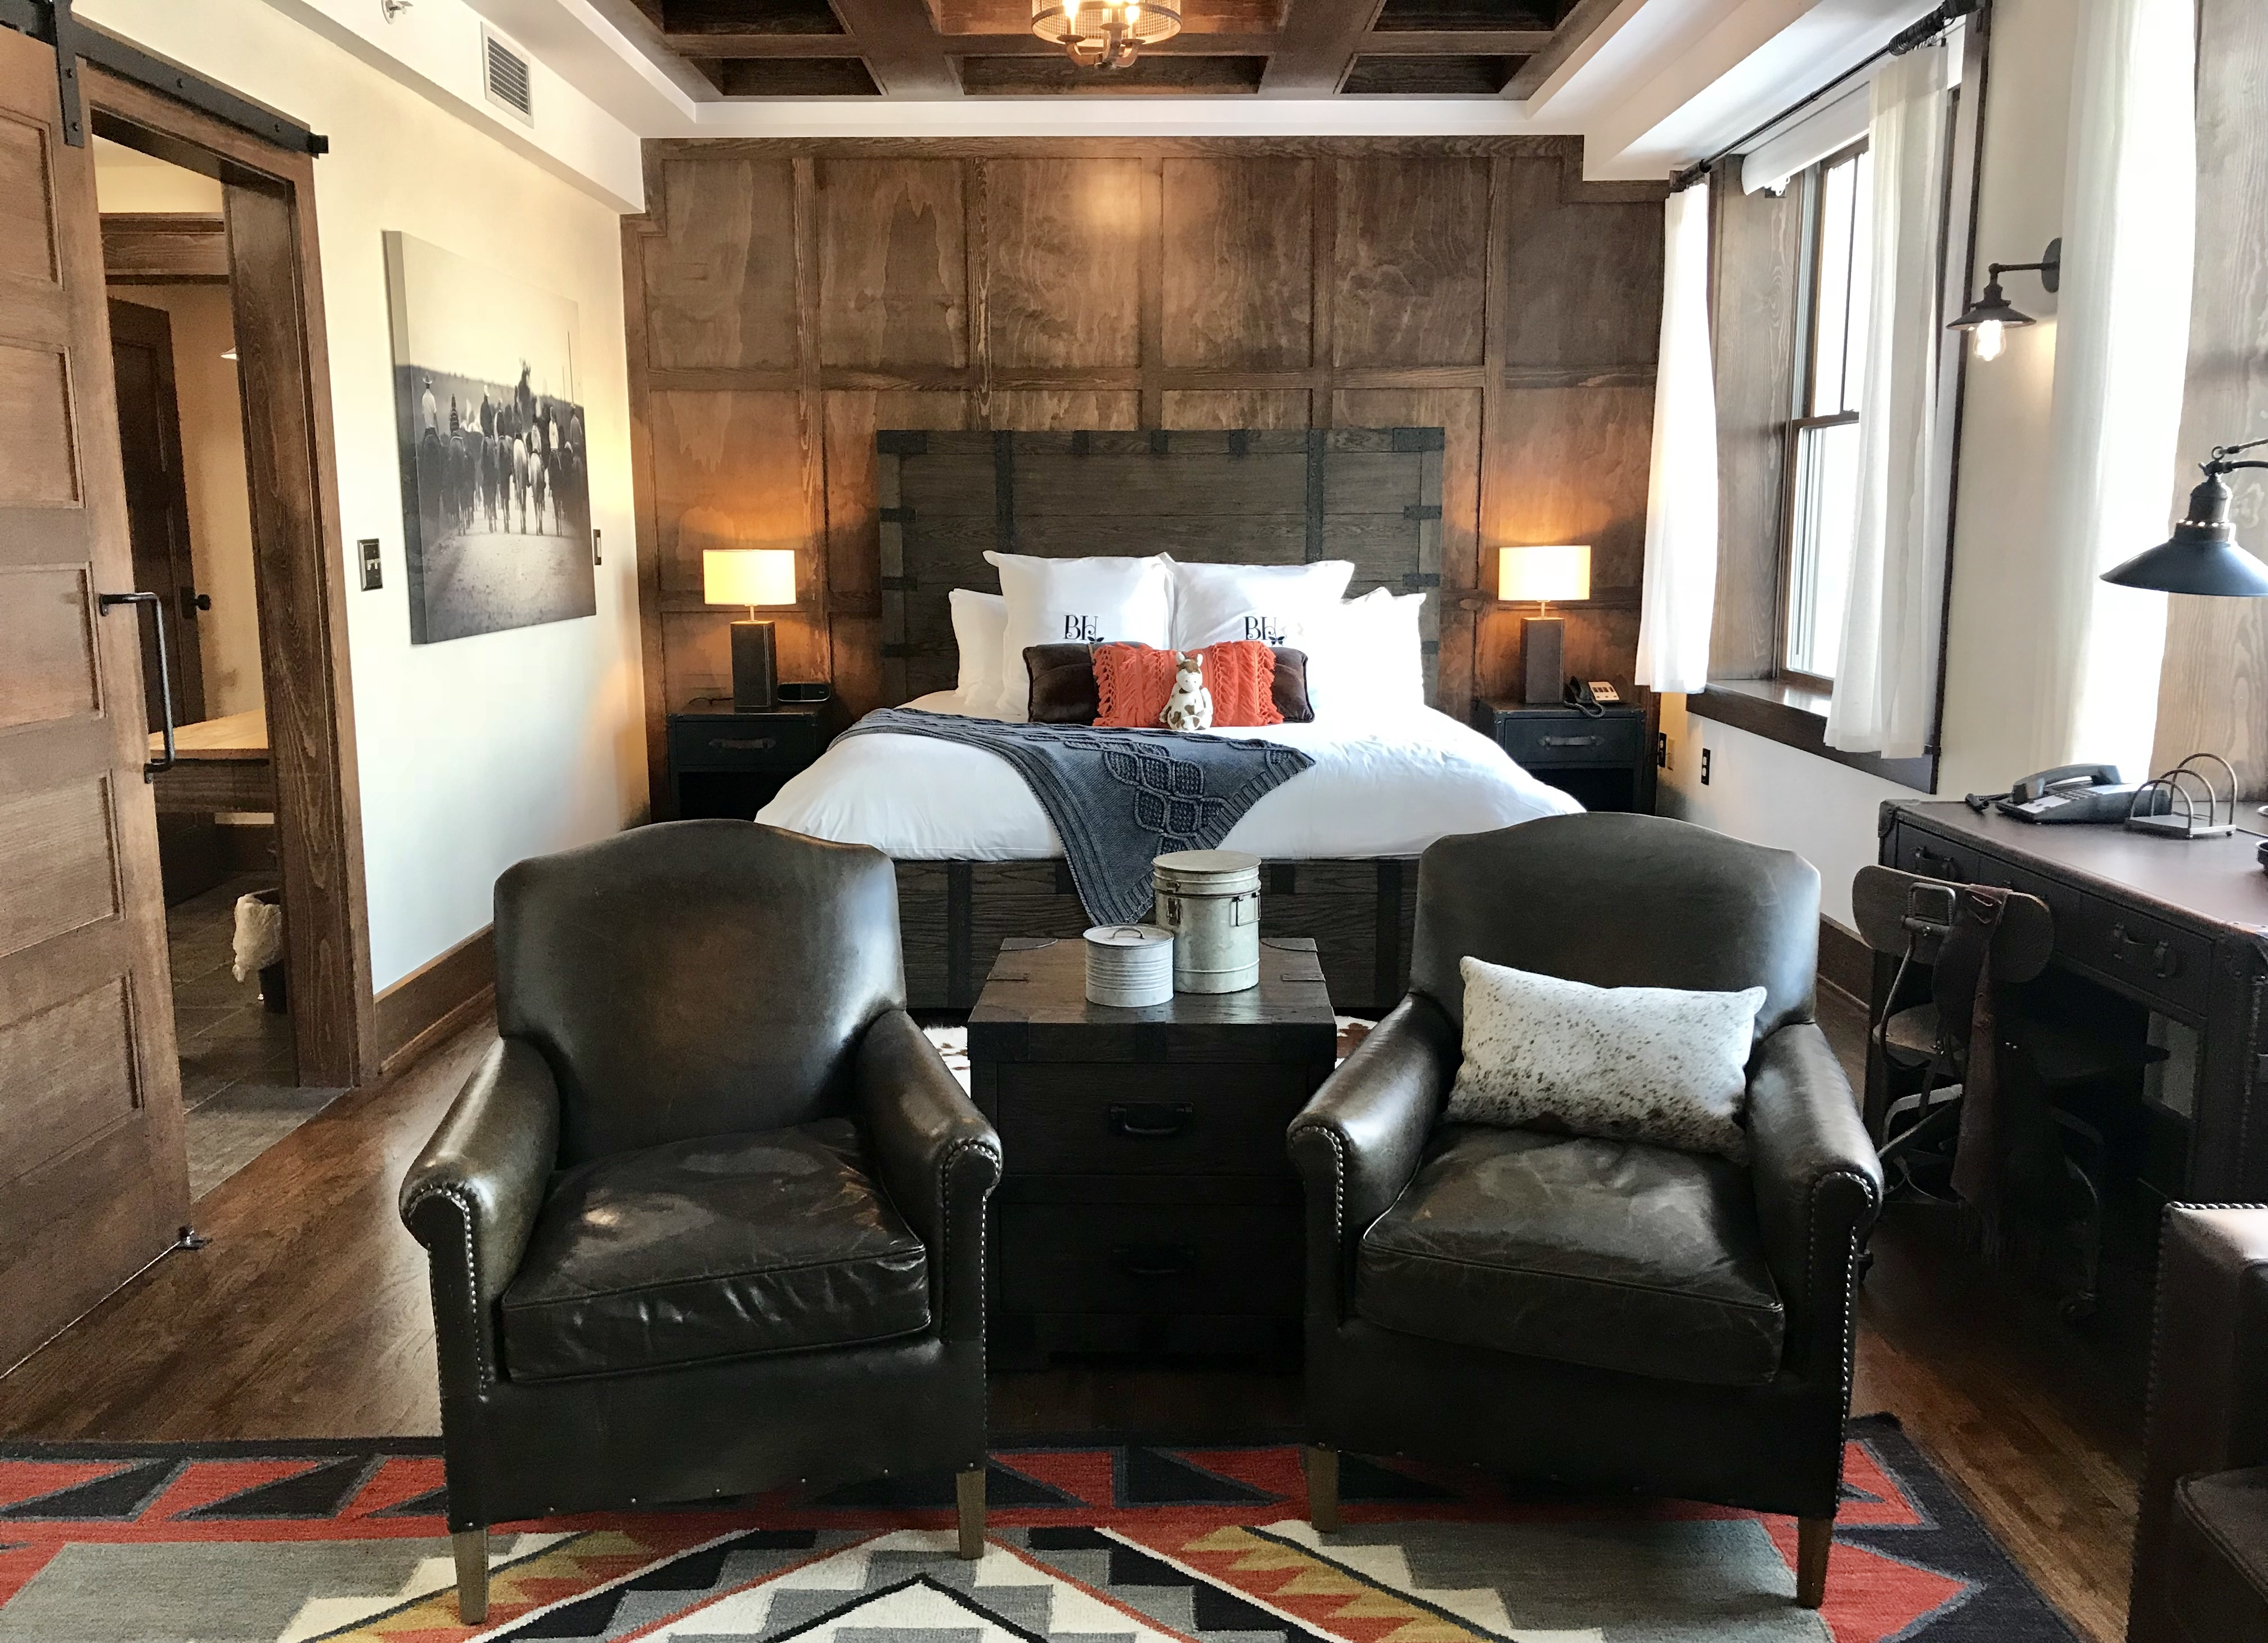 claude and kathy s unexpected night at the pioneer woman s boarding house. Black Bedroom Furniture Sets. Home Design Ideas